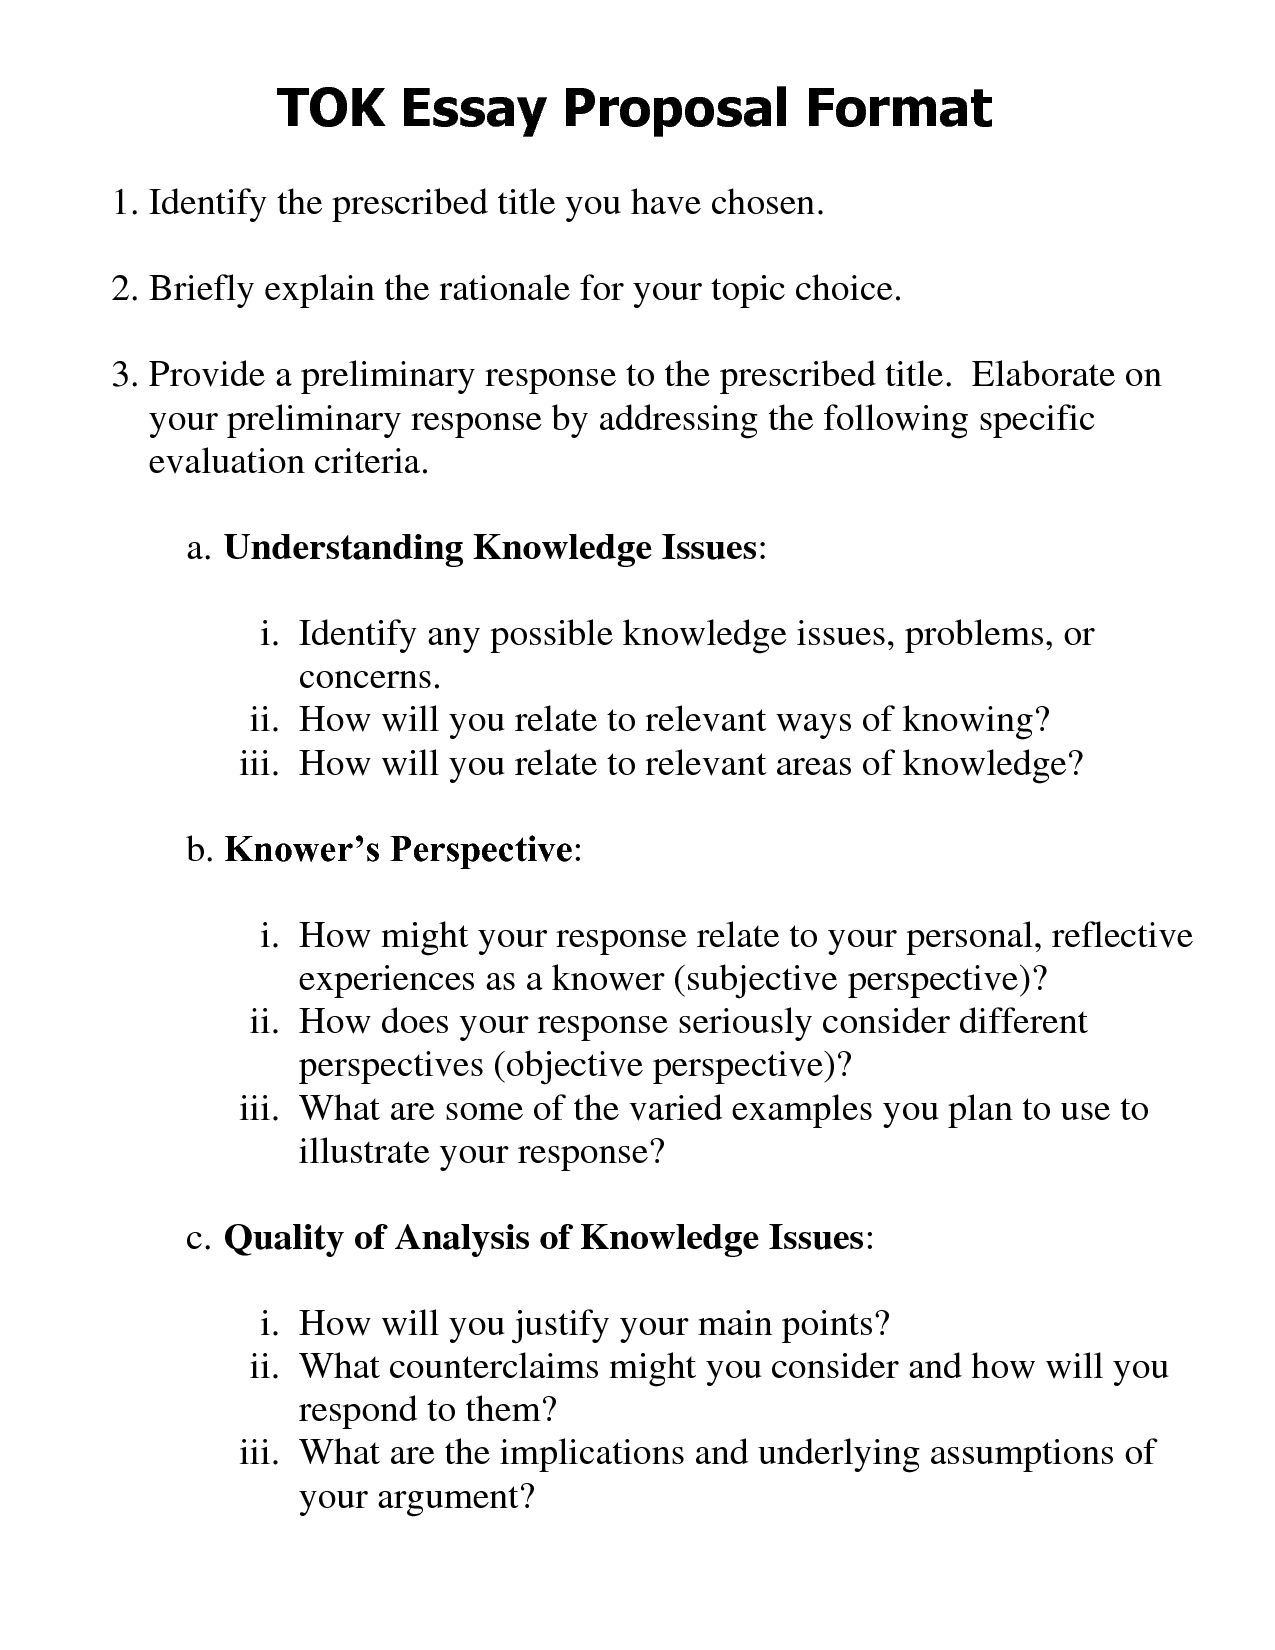 proposal essays proposal essay writing teacher tools proposal example essay proposal paper essaywrite my thesis proposition custom writing company research proposal template bikeboulevardstucson